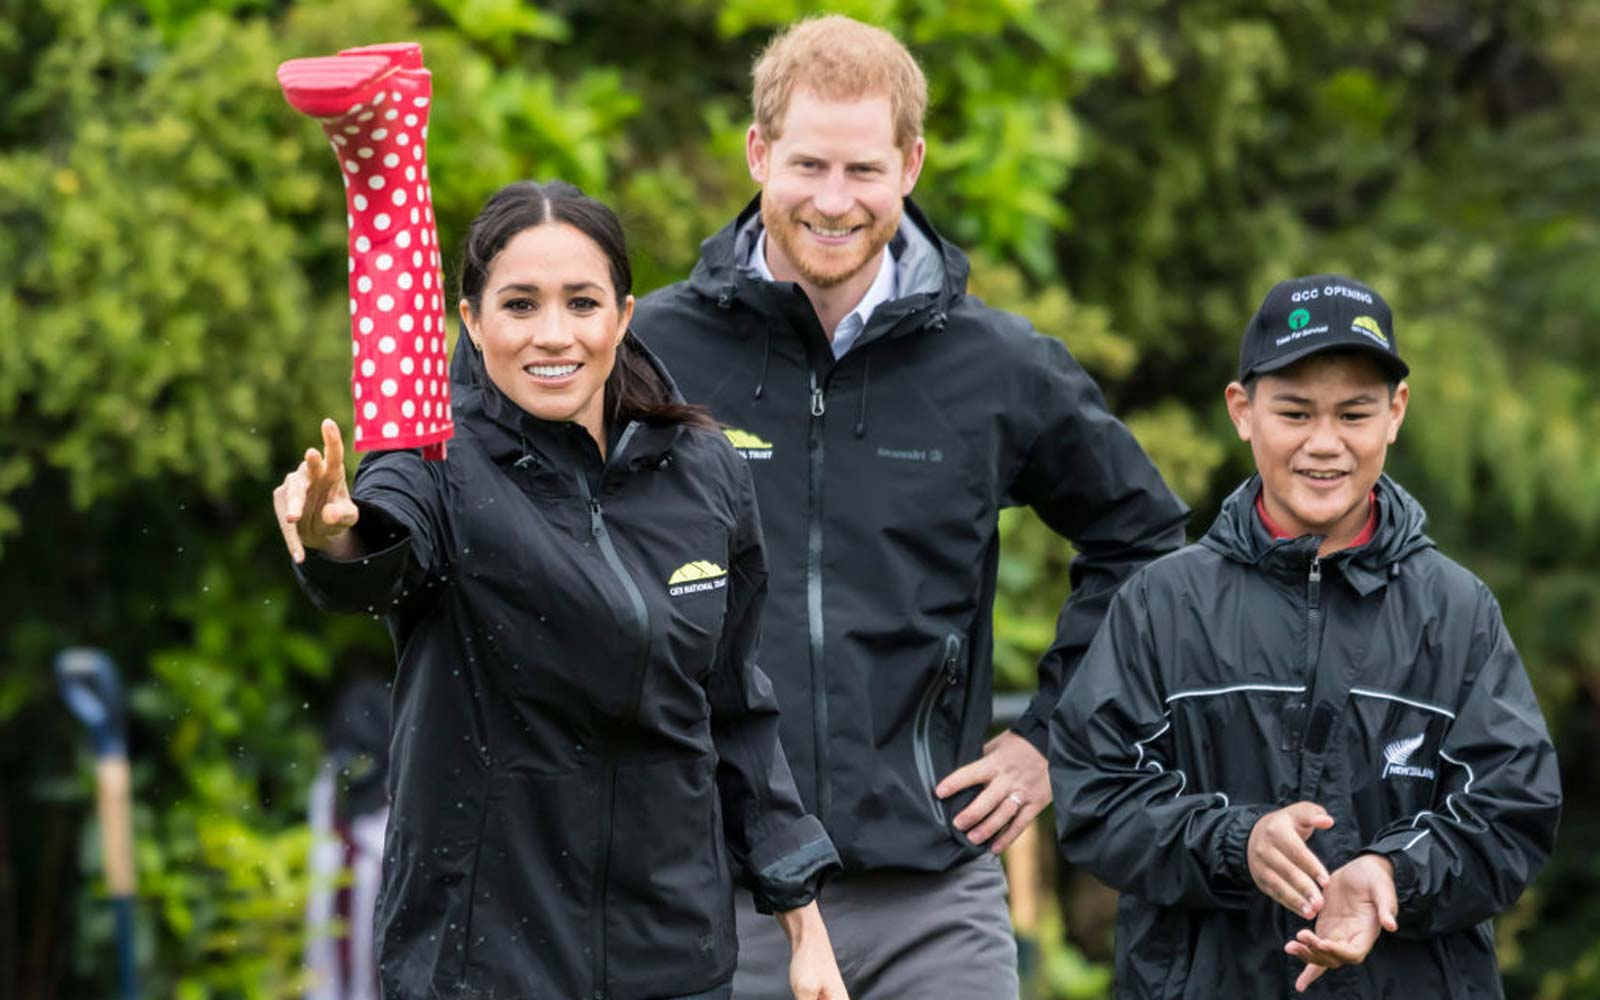 Britain's Meghan, Duchess of Sussex participates in a gumboot throwing competition with Prince Harry after unveiling a plaque dedicating 20 hectares of native bush to the Queen's Commonwealth Canopy project